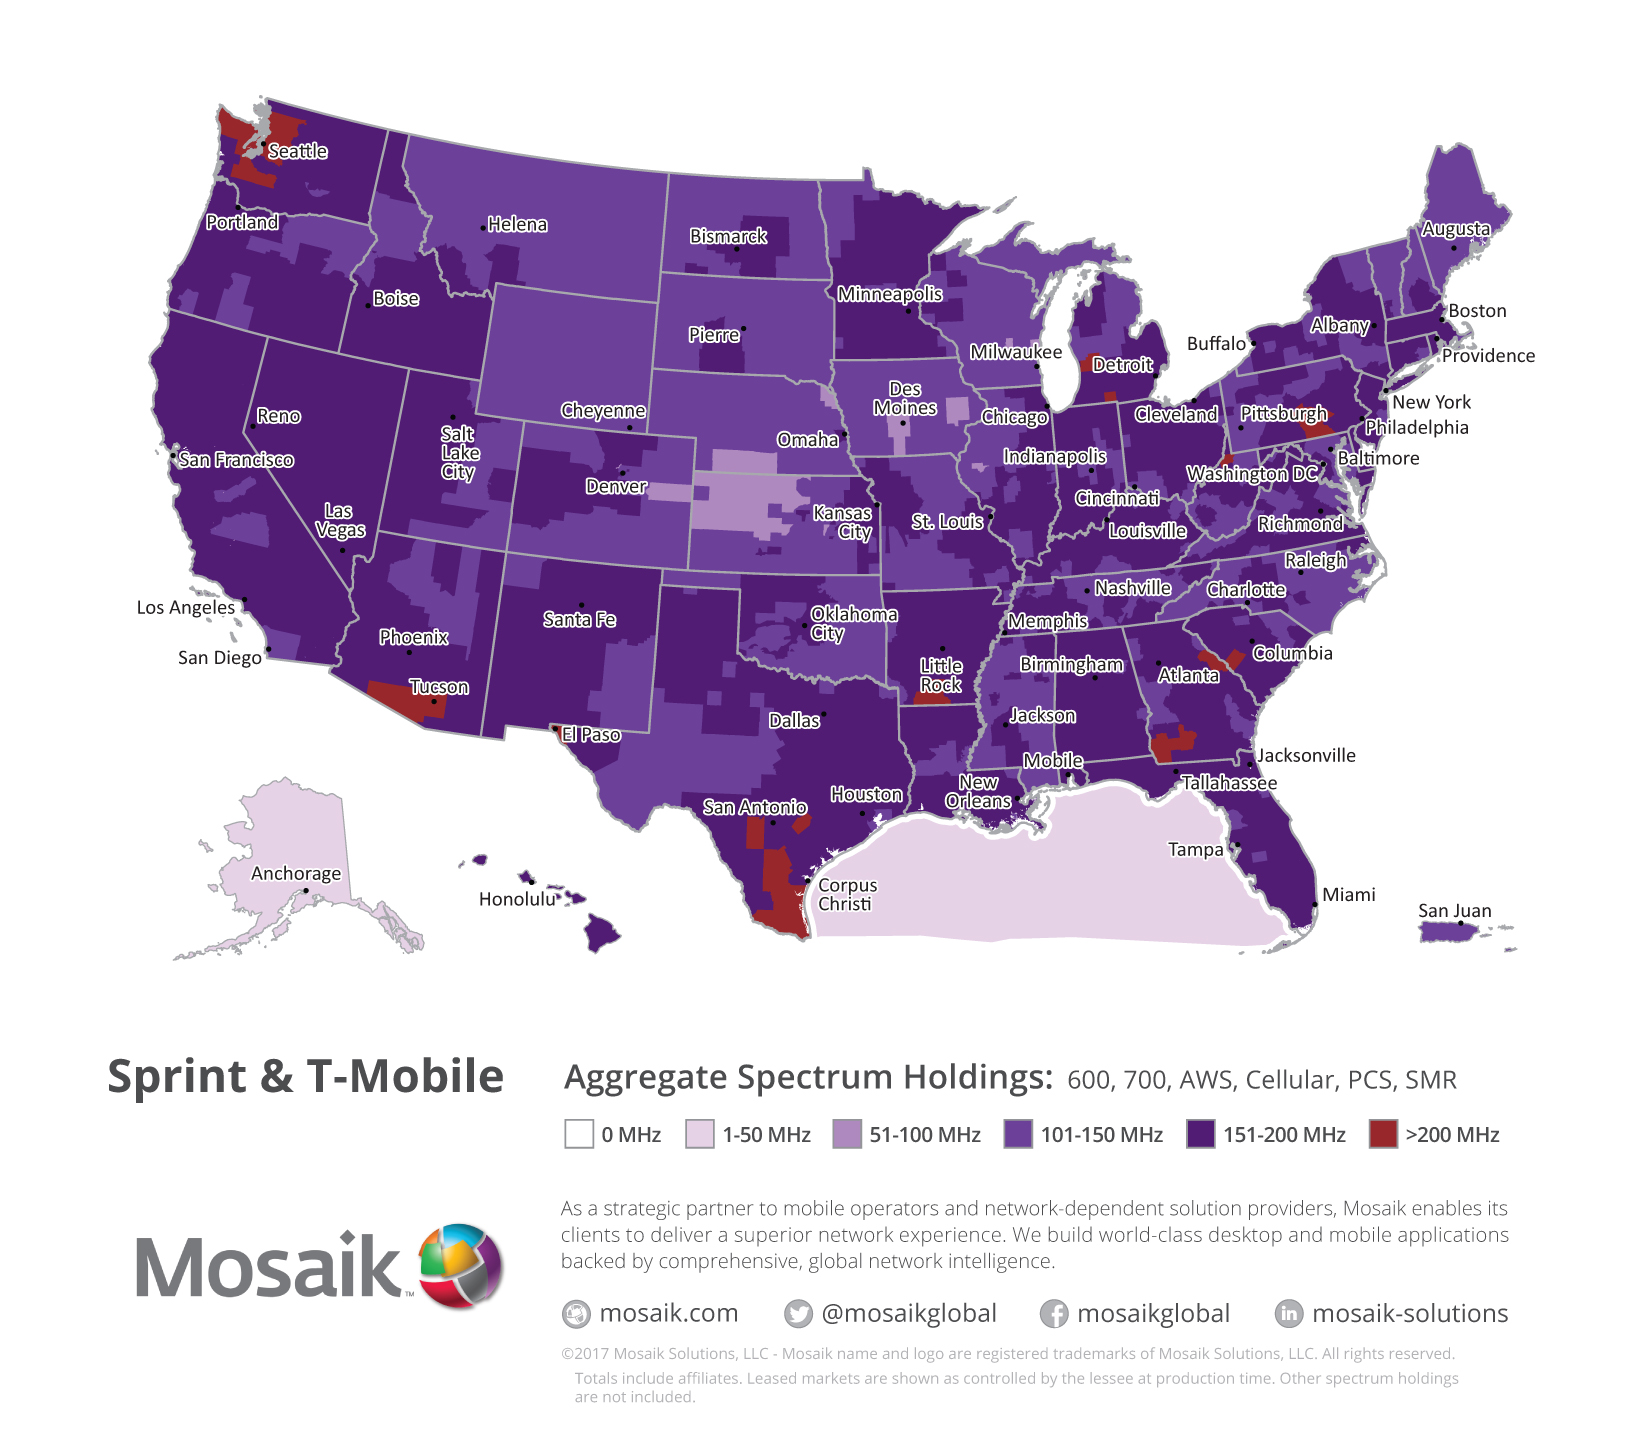 sprint map coverage with Sprint T Mobile Could Build A Monster  Work on 26807 besides Peoria County Maps besides Tfs As Perfect Tool For Scrum Part 4 Sprint moreover At Service Plans And Coverage Review besides World Map Art Flowers World And Map Image World Map With Tropics And Arctic Circle.